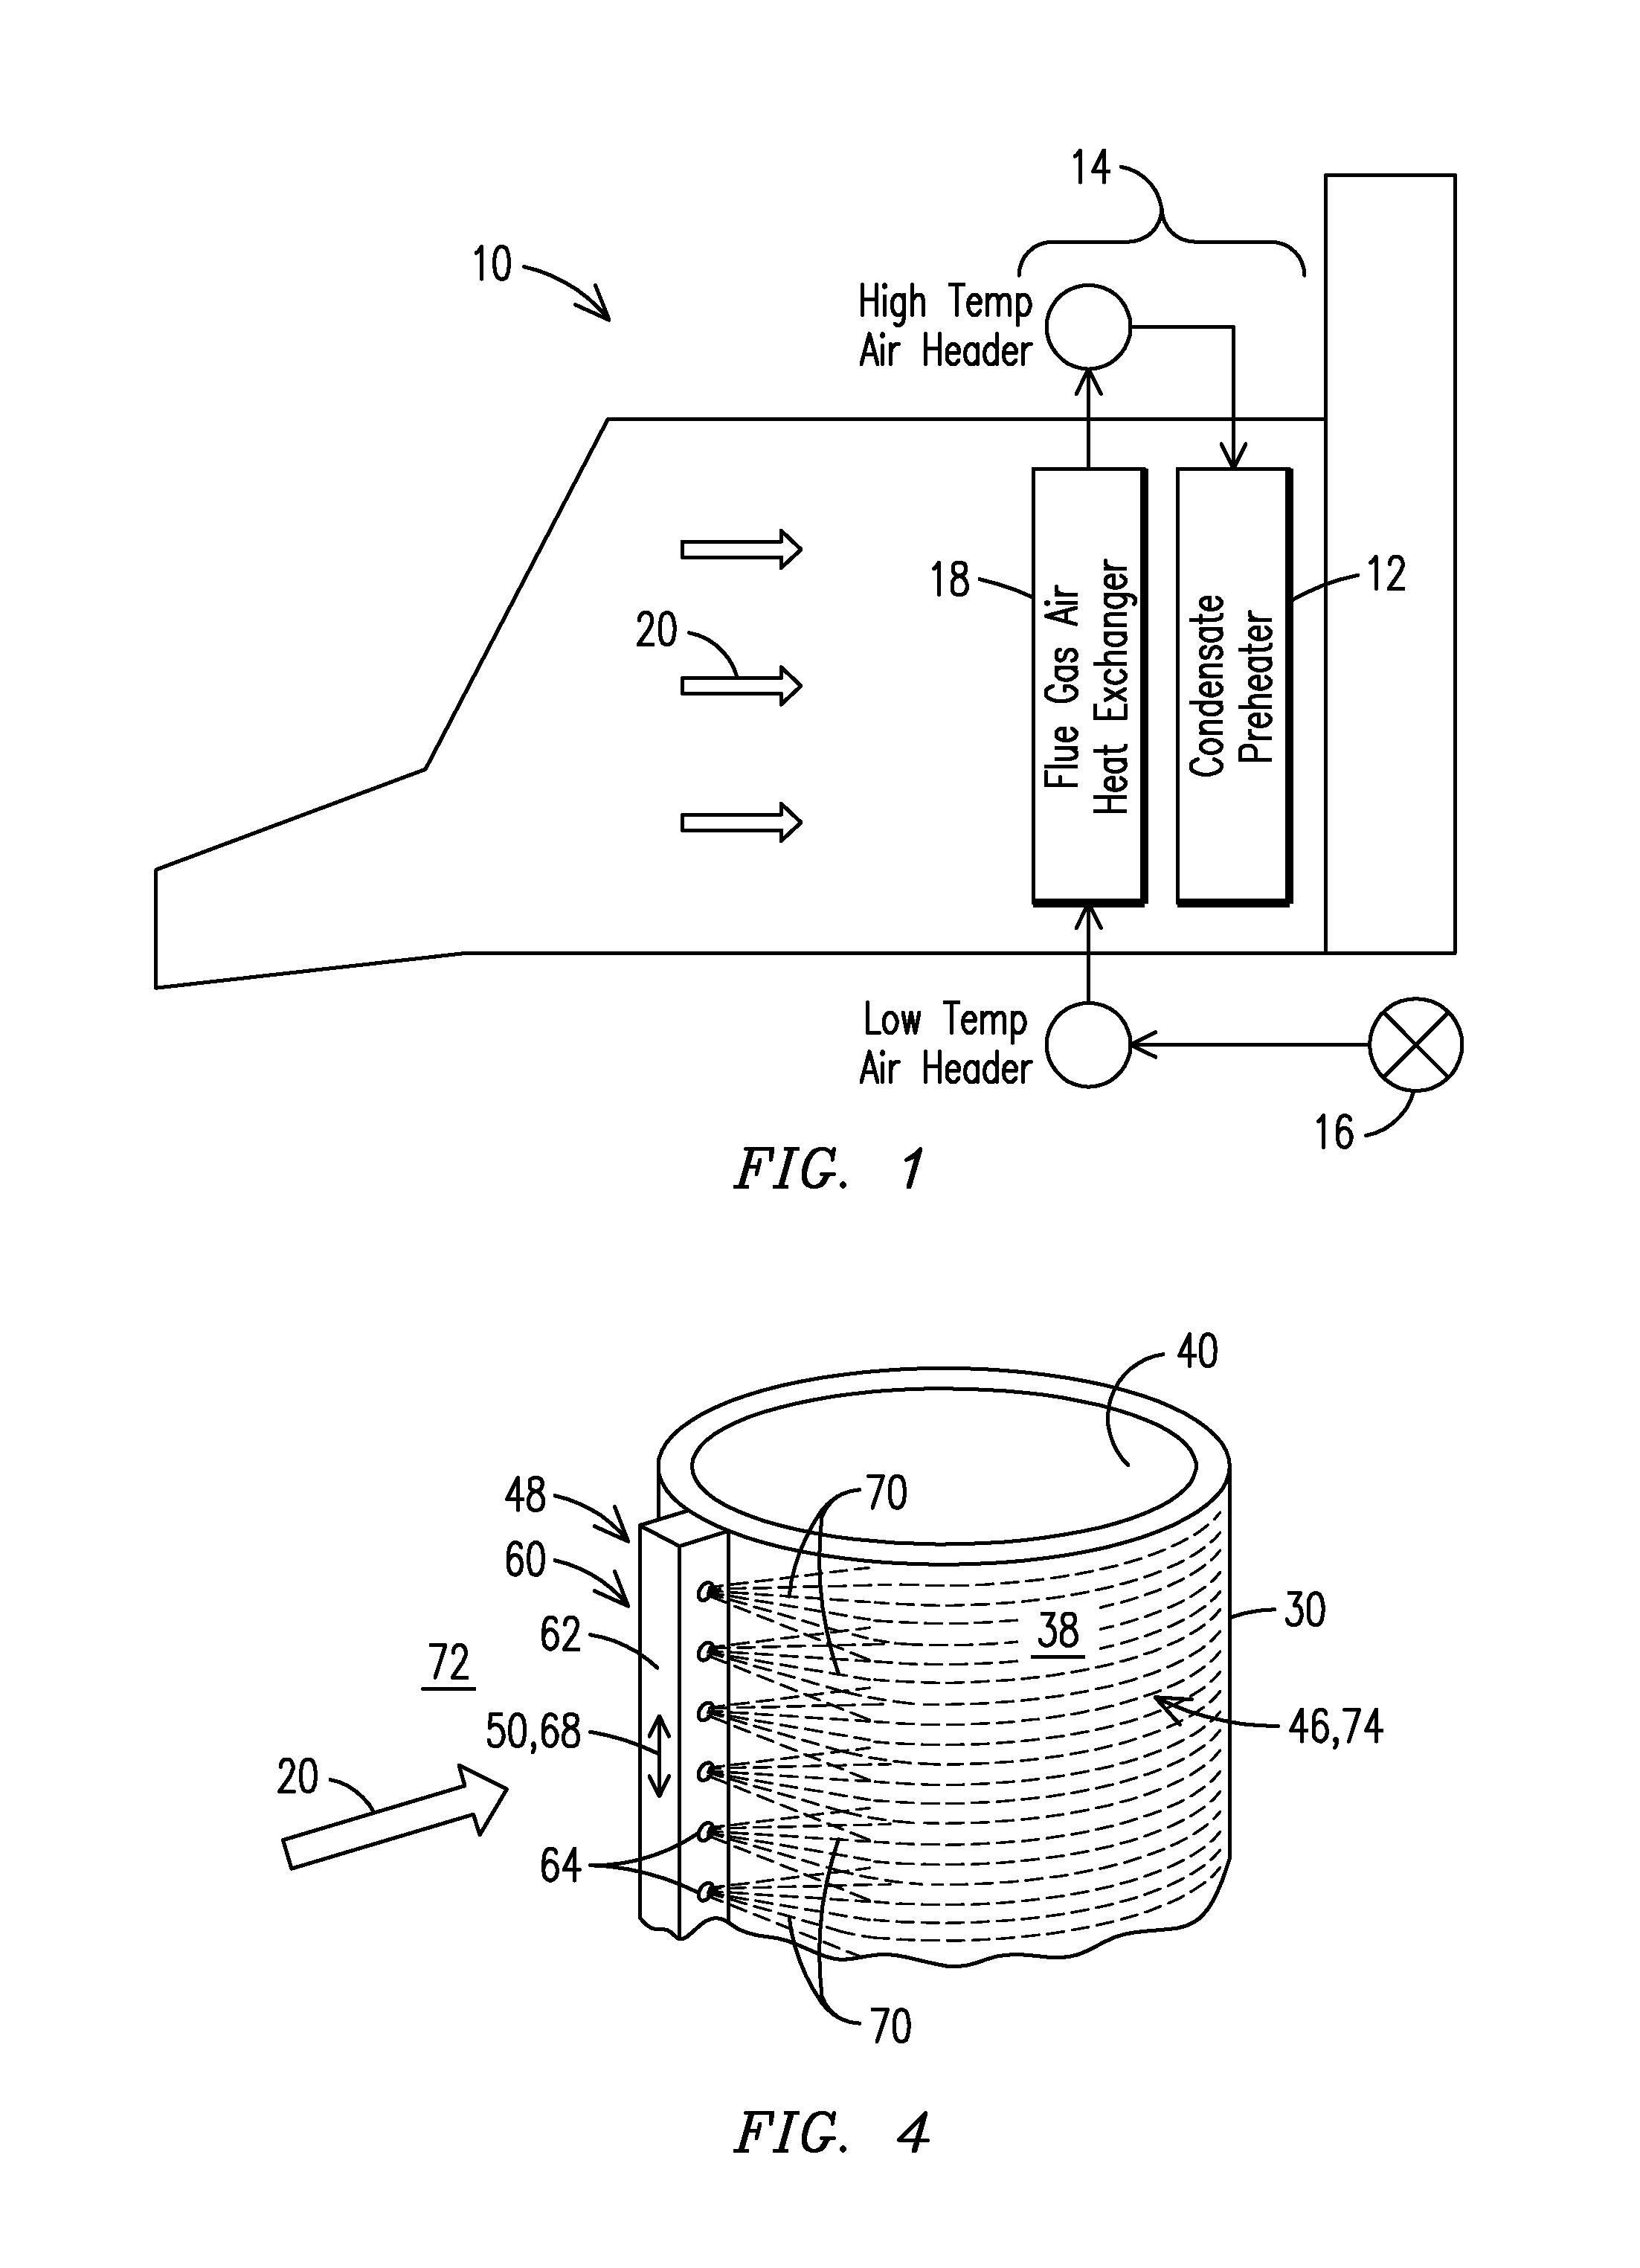 Patent US Localized flue gas dilution in heat